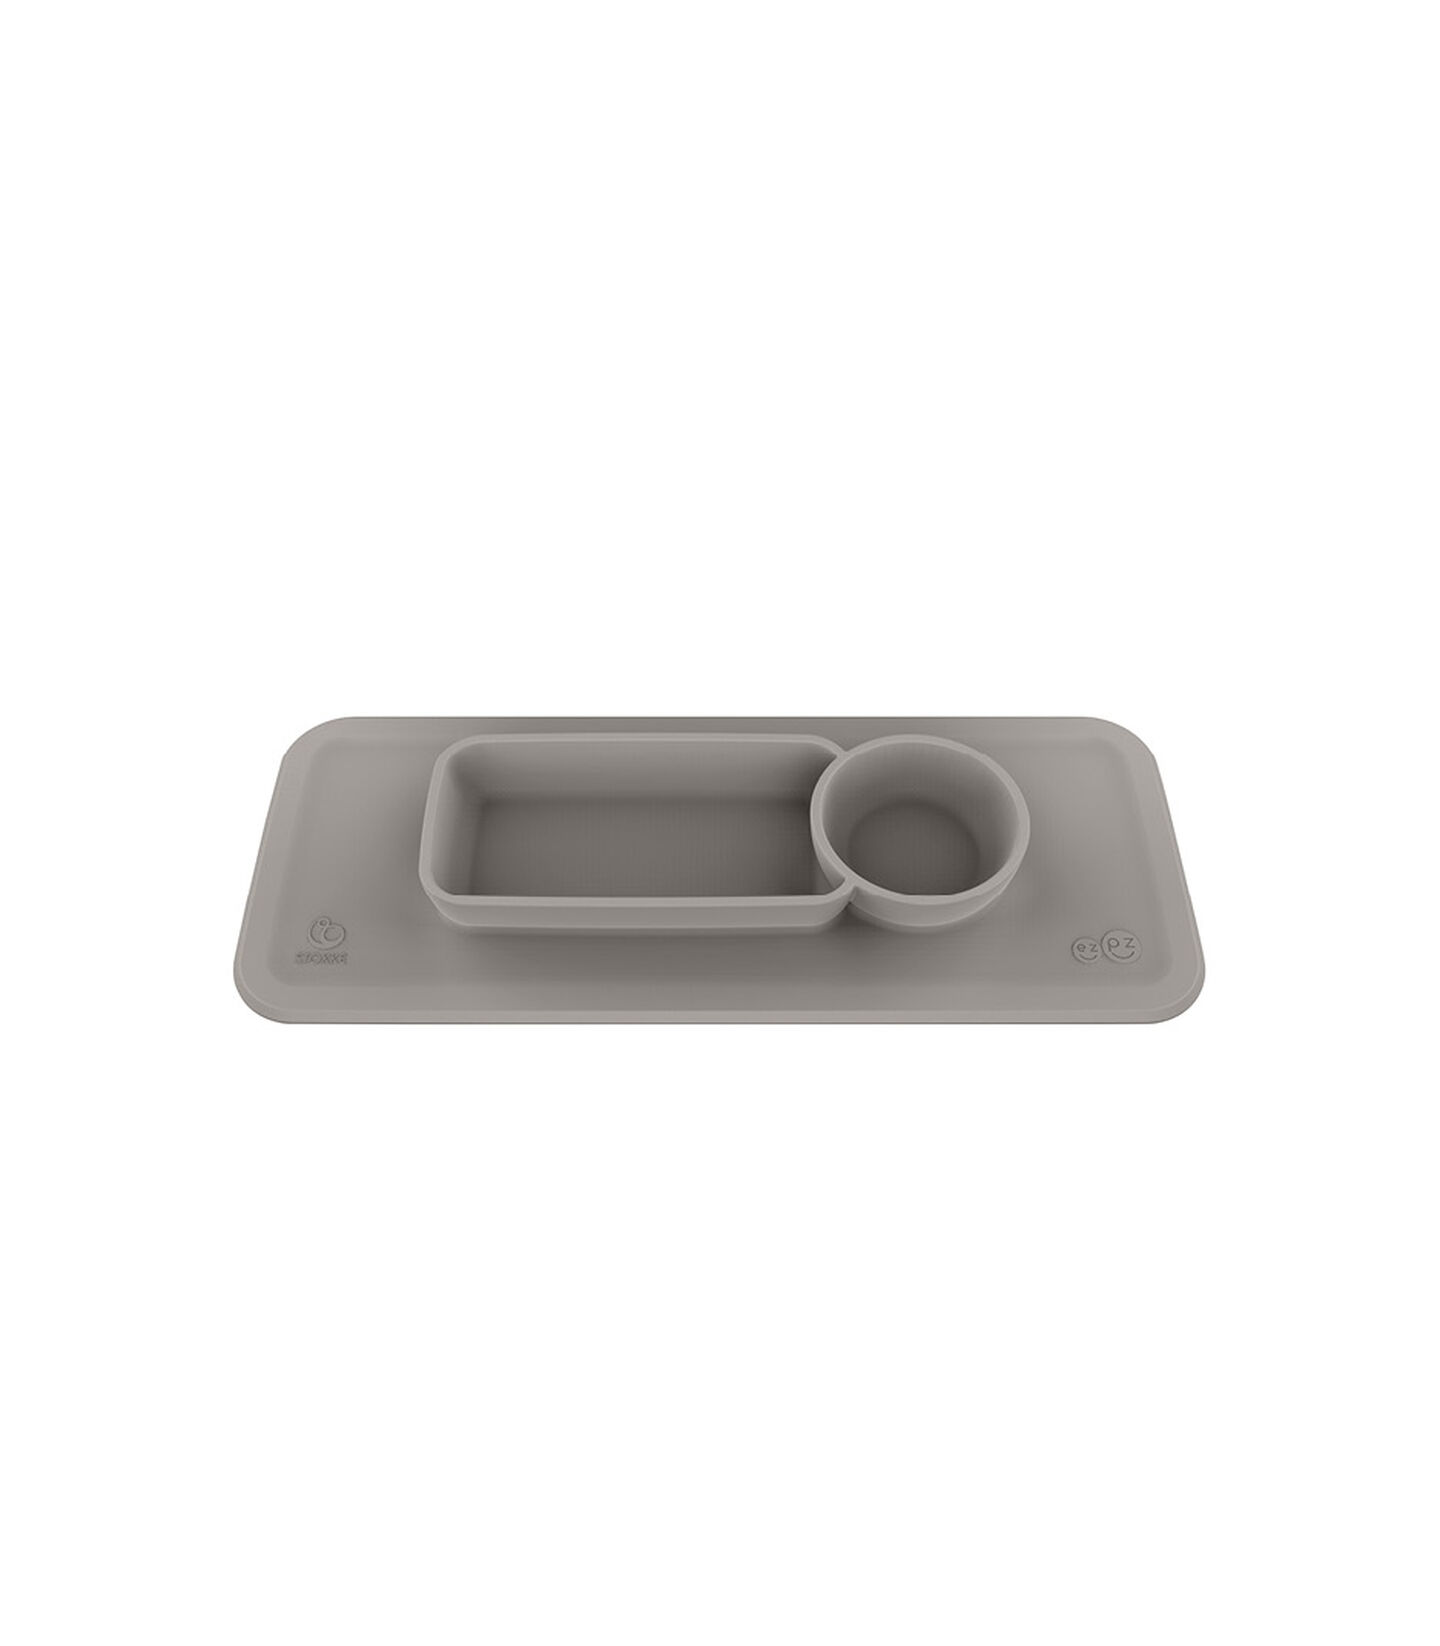 ezpz™ by Stokke™ placemat for Clikk™ Tray Green, Grigio Soft, mainview view 1